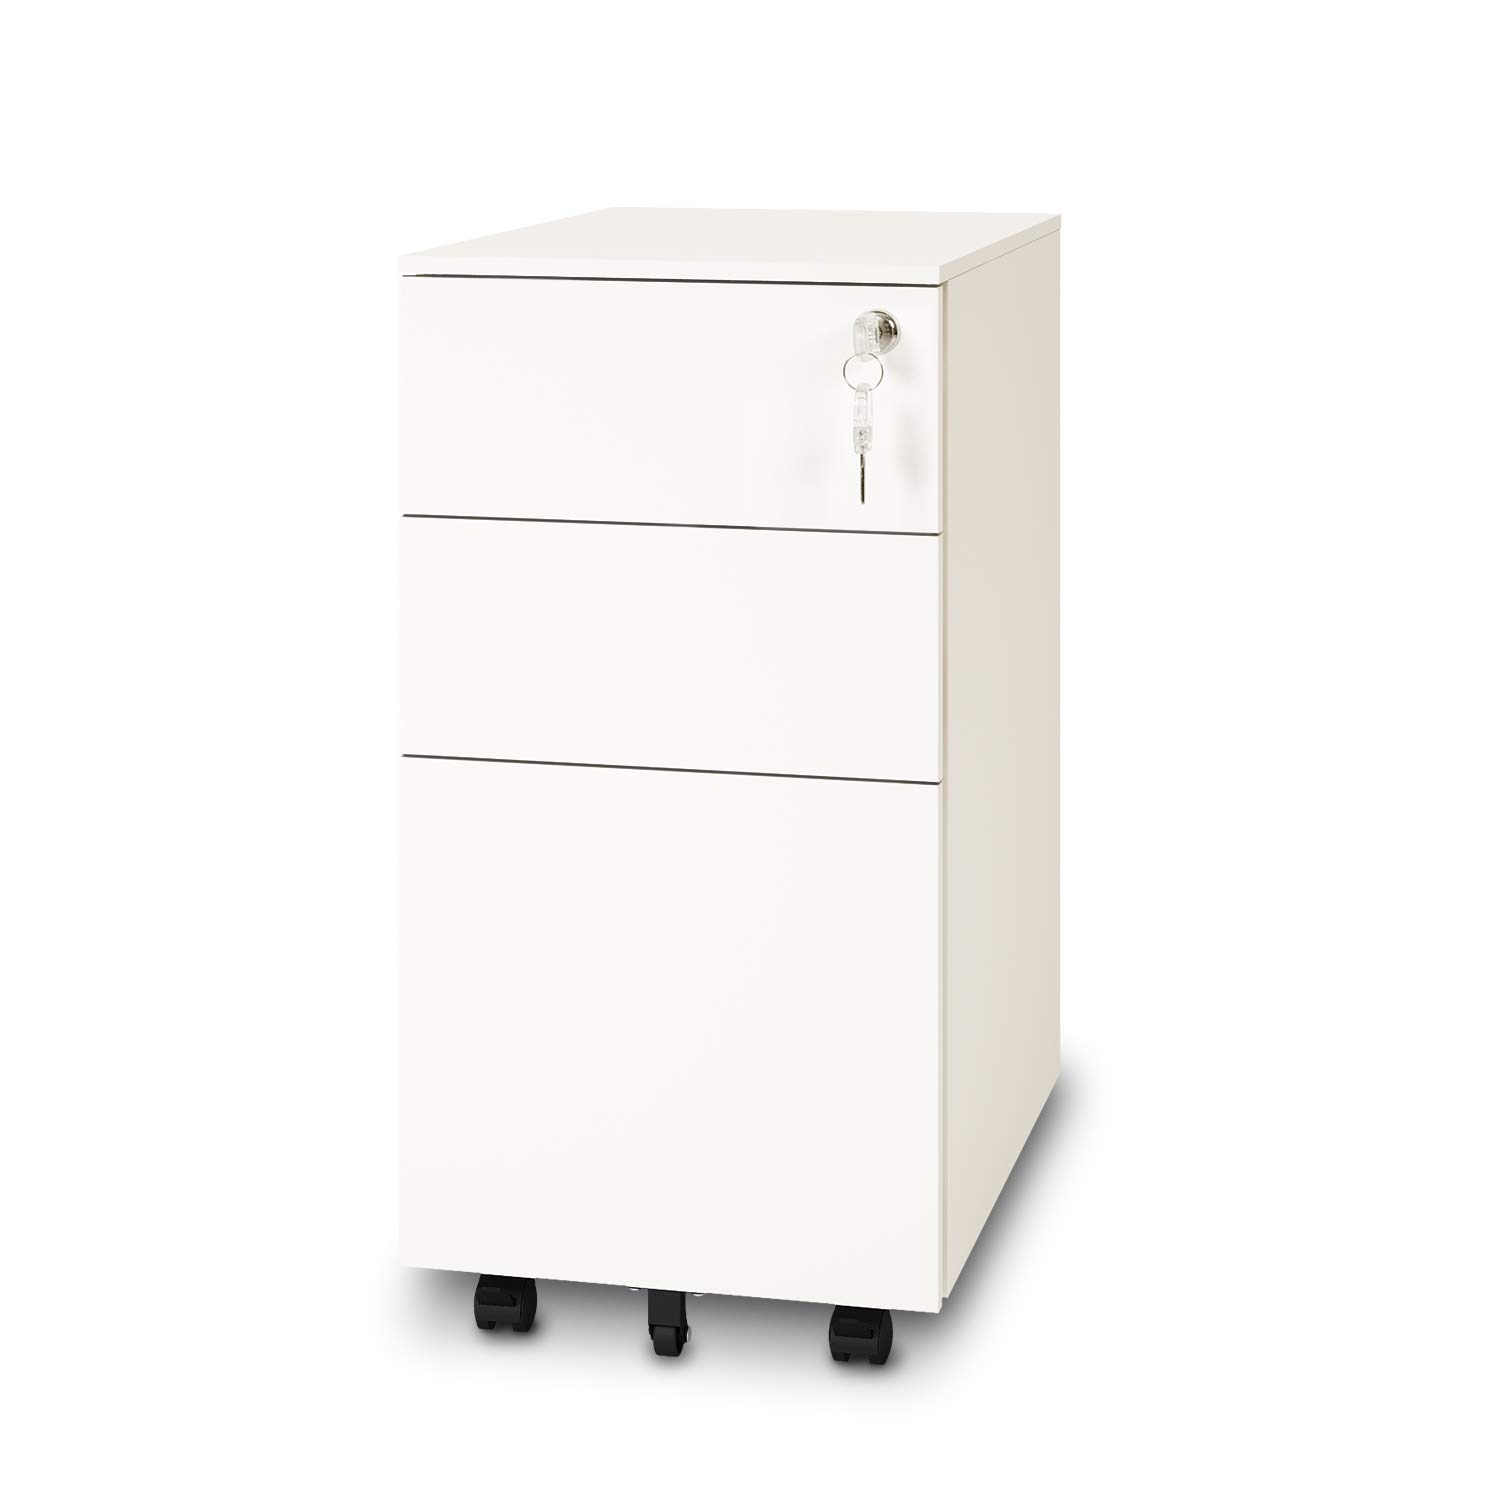 DEVAISE 3-Drawer Metal Slim File Cabinet with Lock, Mobile Pedestal in White